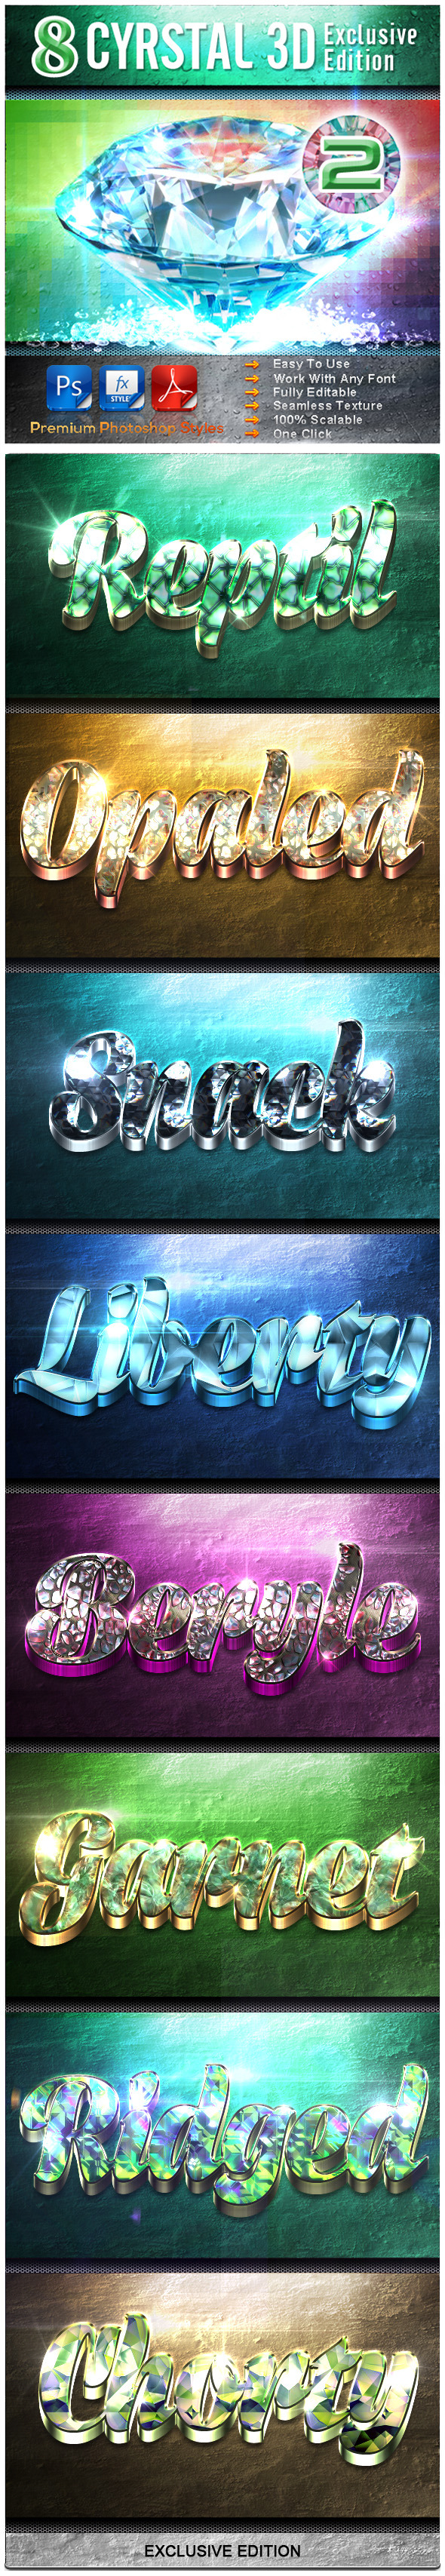 8 Crystal 3D Exclusive Edition Vol.2 - Text Effects Styles